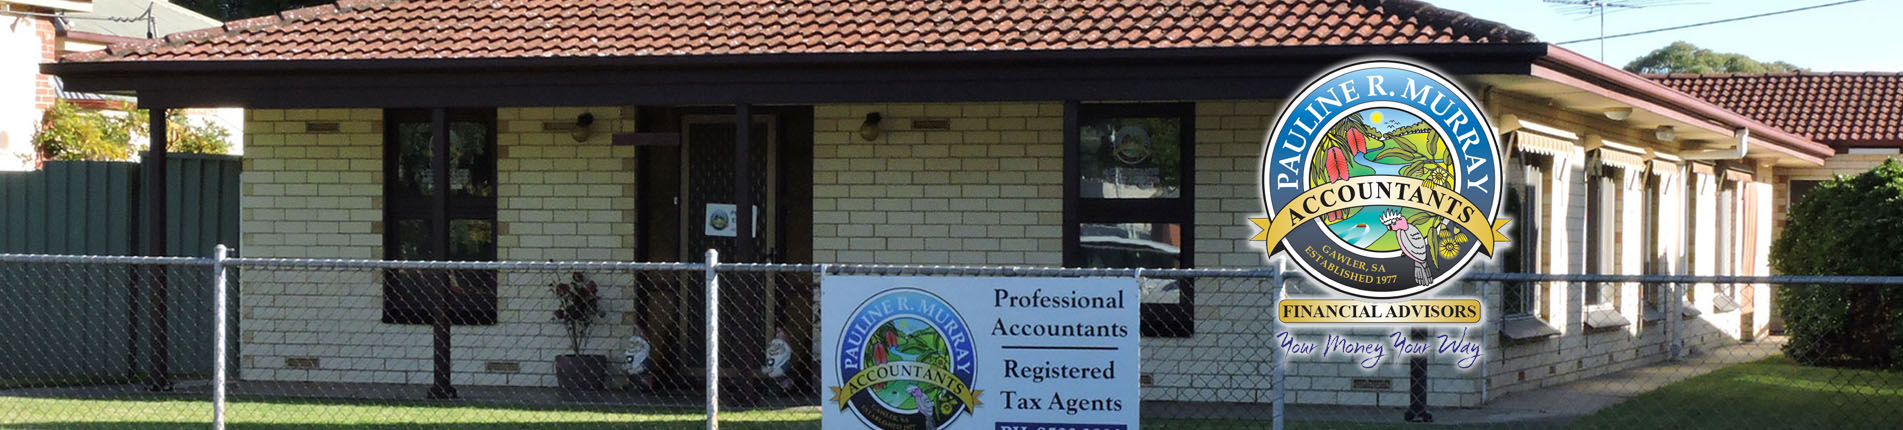 Pauline-R-Murray-Accountants-Financial-Planning-Gawler-Yorke-Peninsula-04